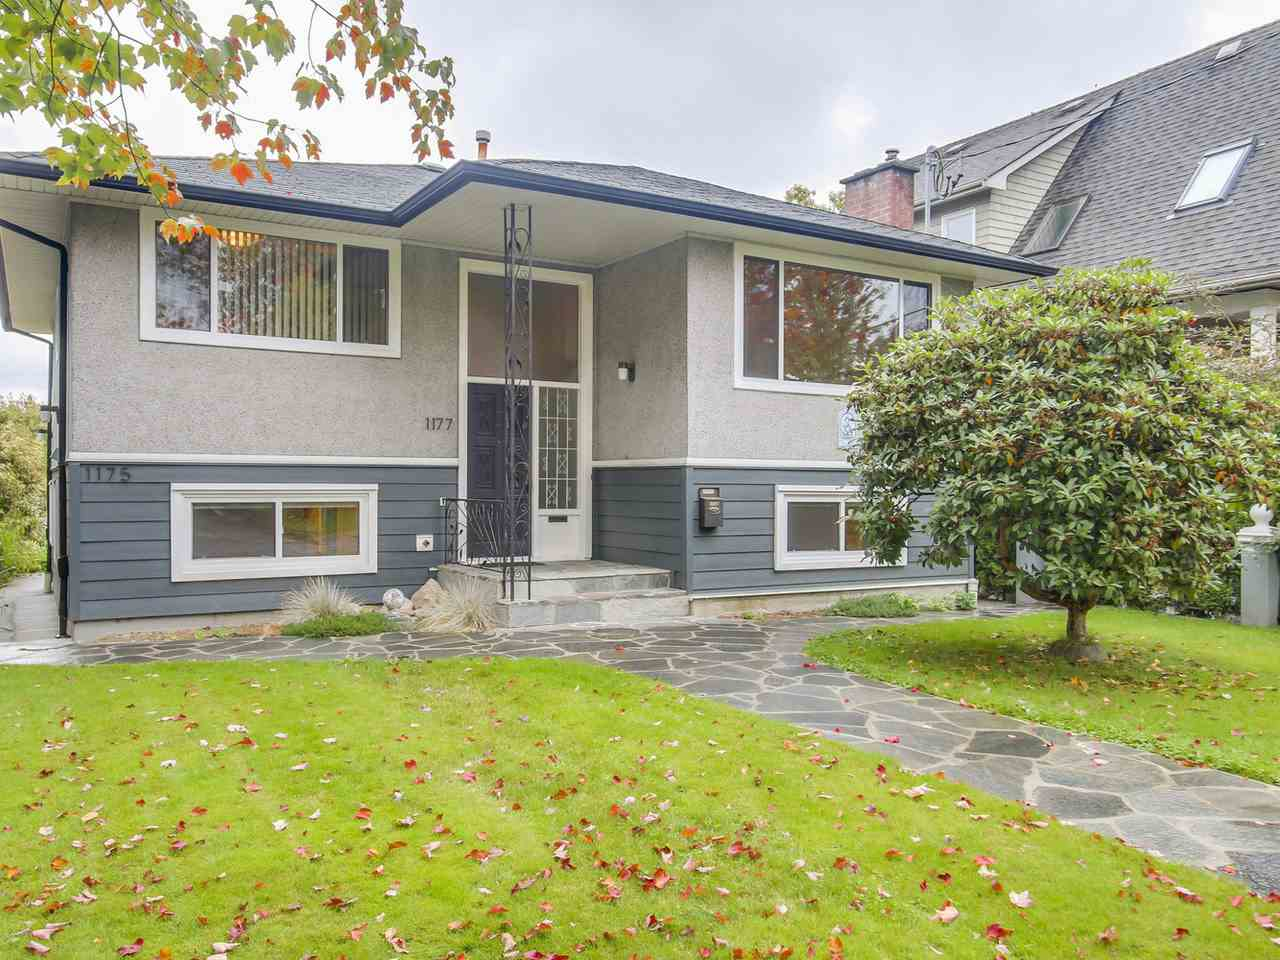 Main Photo: 1175 E 15TH Avenue in Vancouver: Mount Pleasant VE House for sale (Vancouver East)  : MLS(r) # R2131110